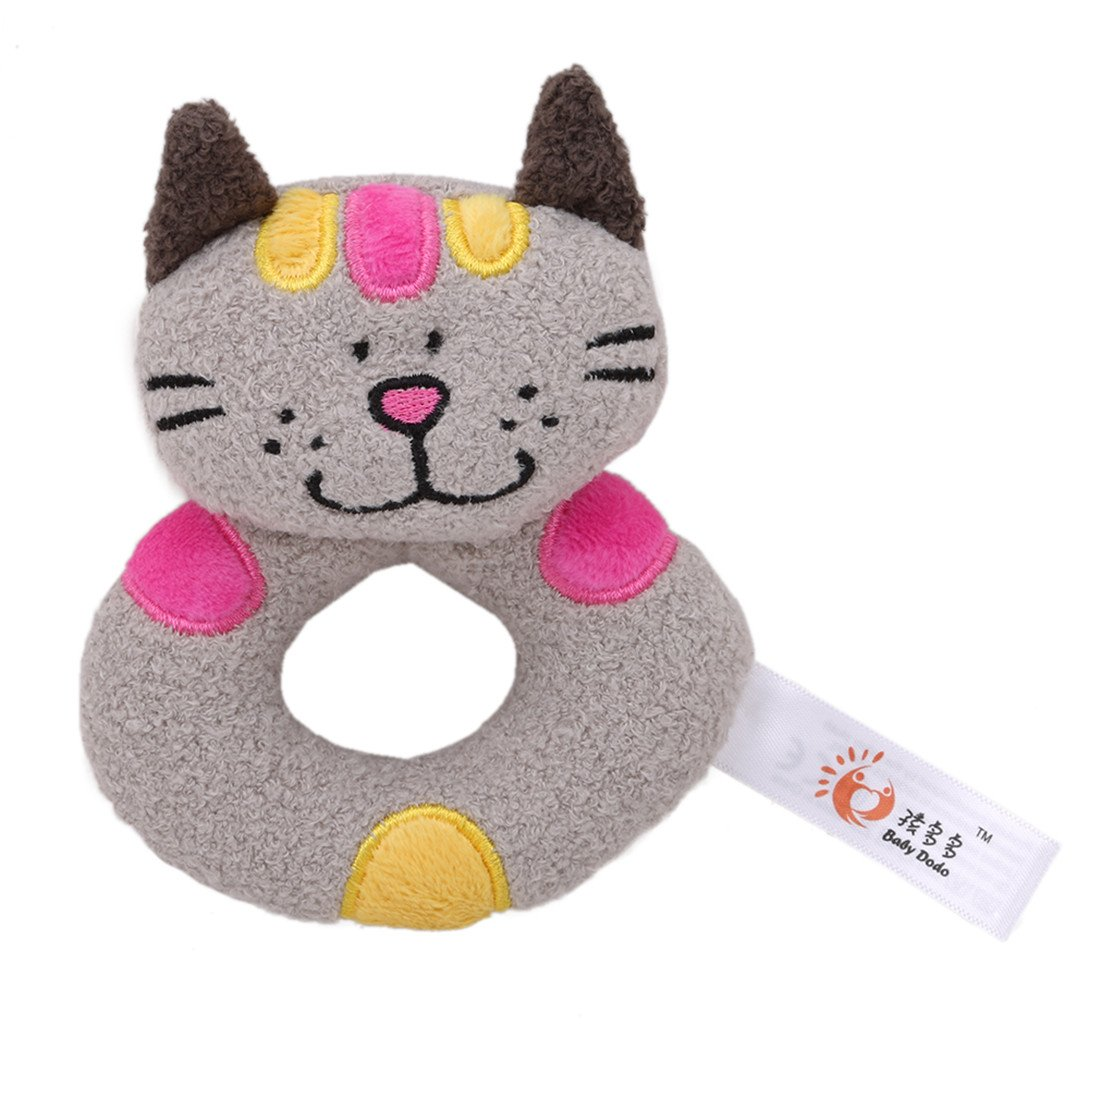 Edtoy Cute Animal Soft Baby Teething Toys Wrist Rattles and Foot Finders for Fun Toys (cat)